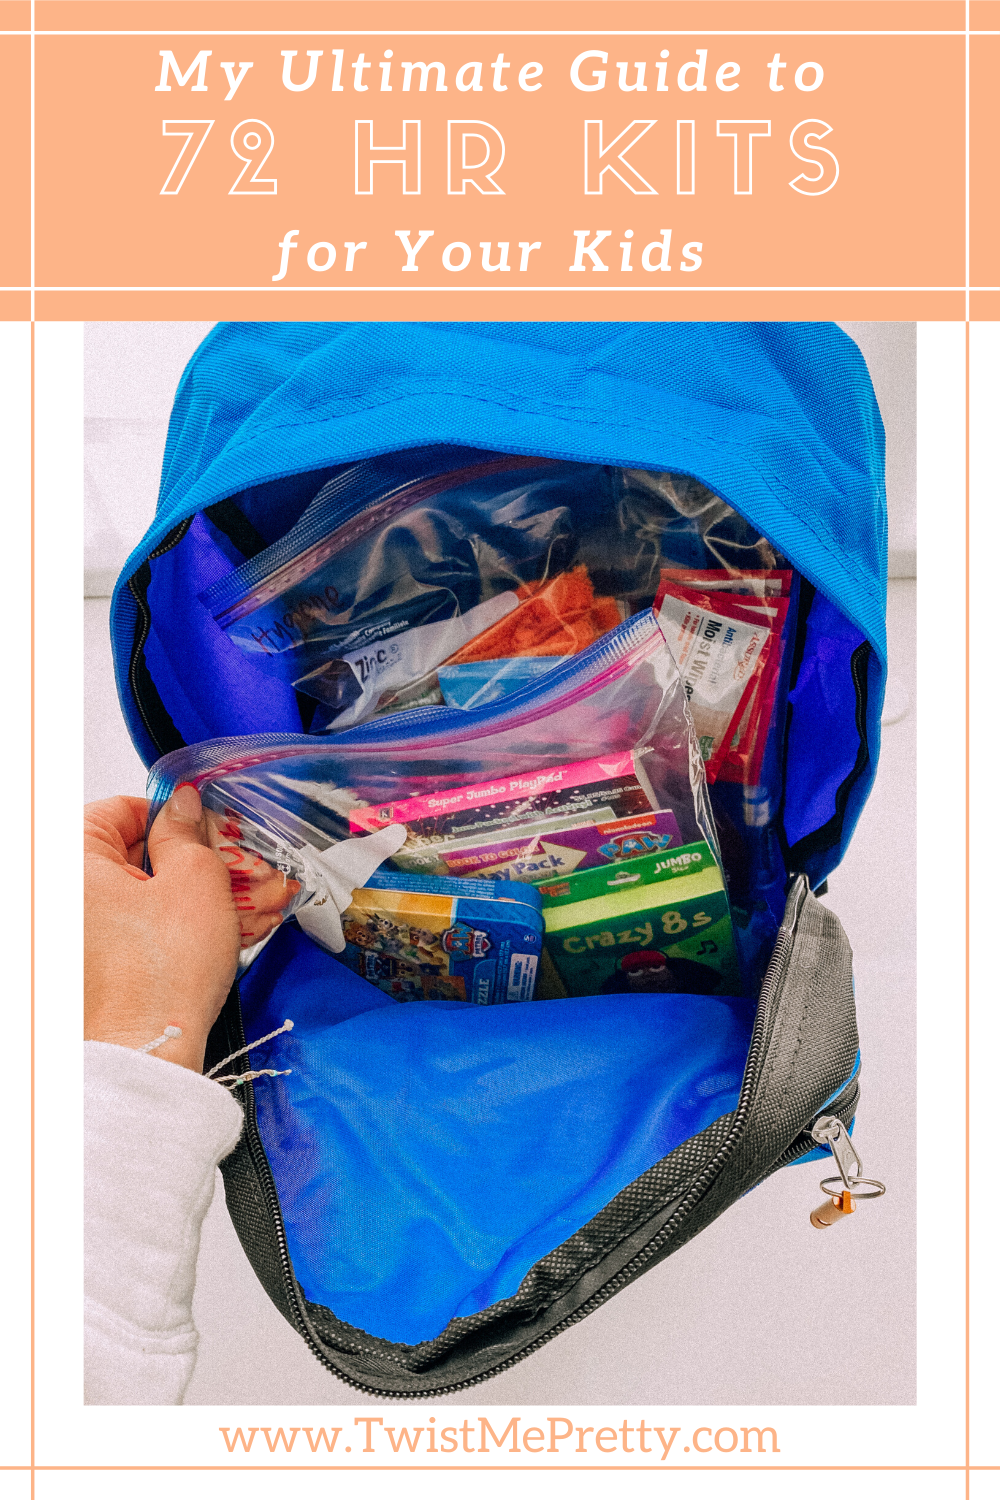 My ultimate guide to 72 hour kits for your kids. www.twistmepretty.com